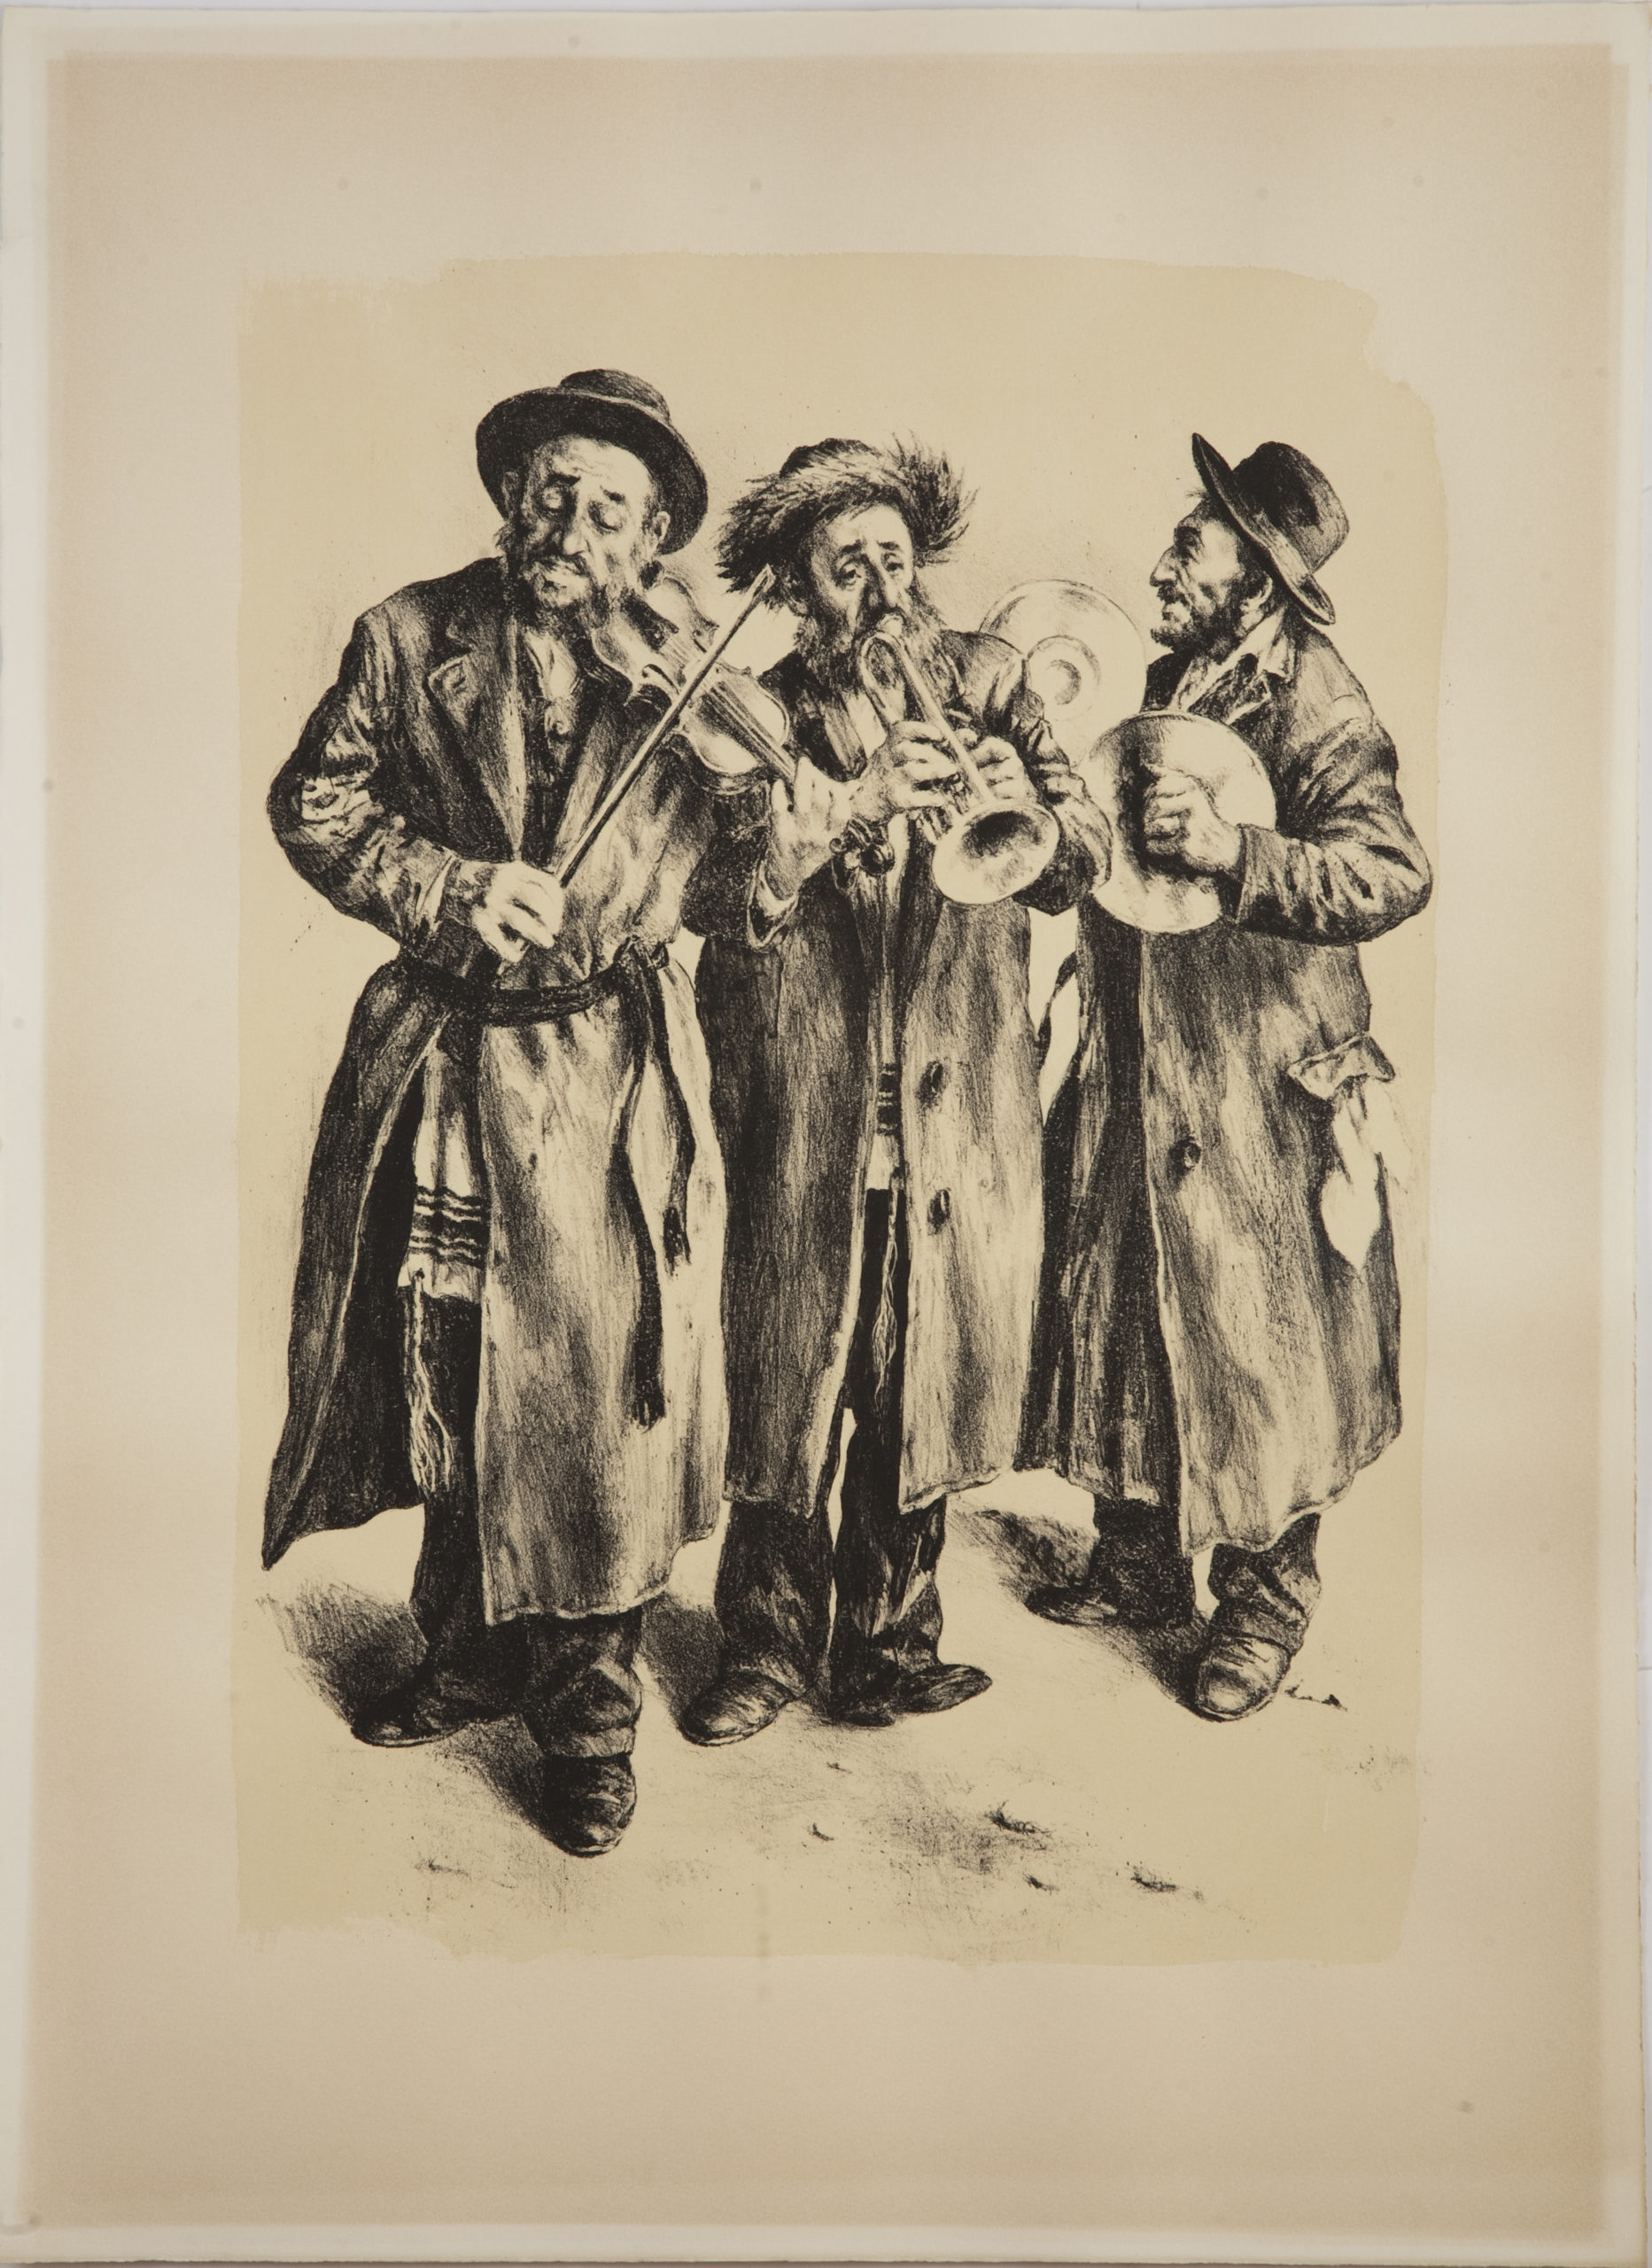 L02B Musicians - Black and White - Lithograph - 21.5 x 30 - No Frame - $530